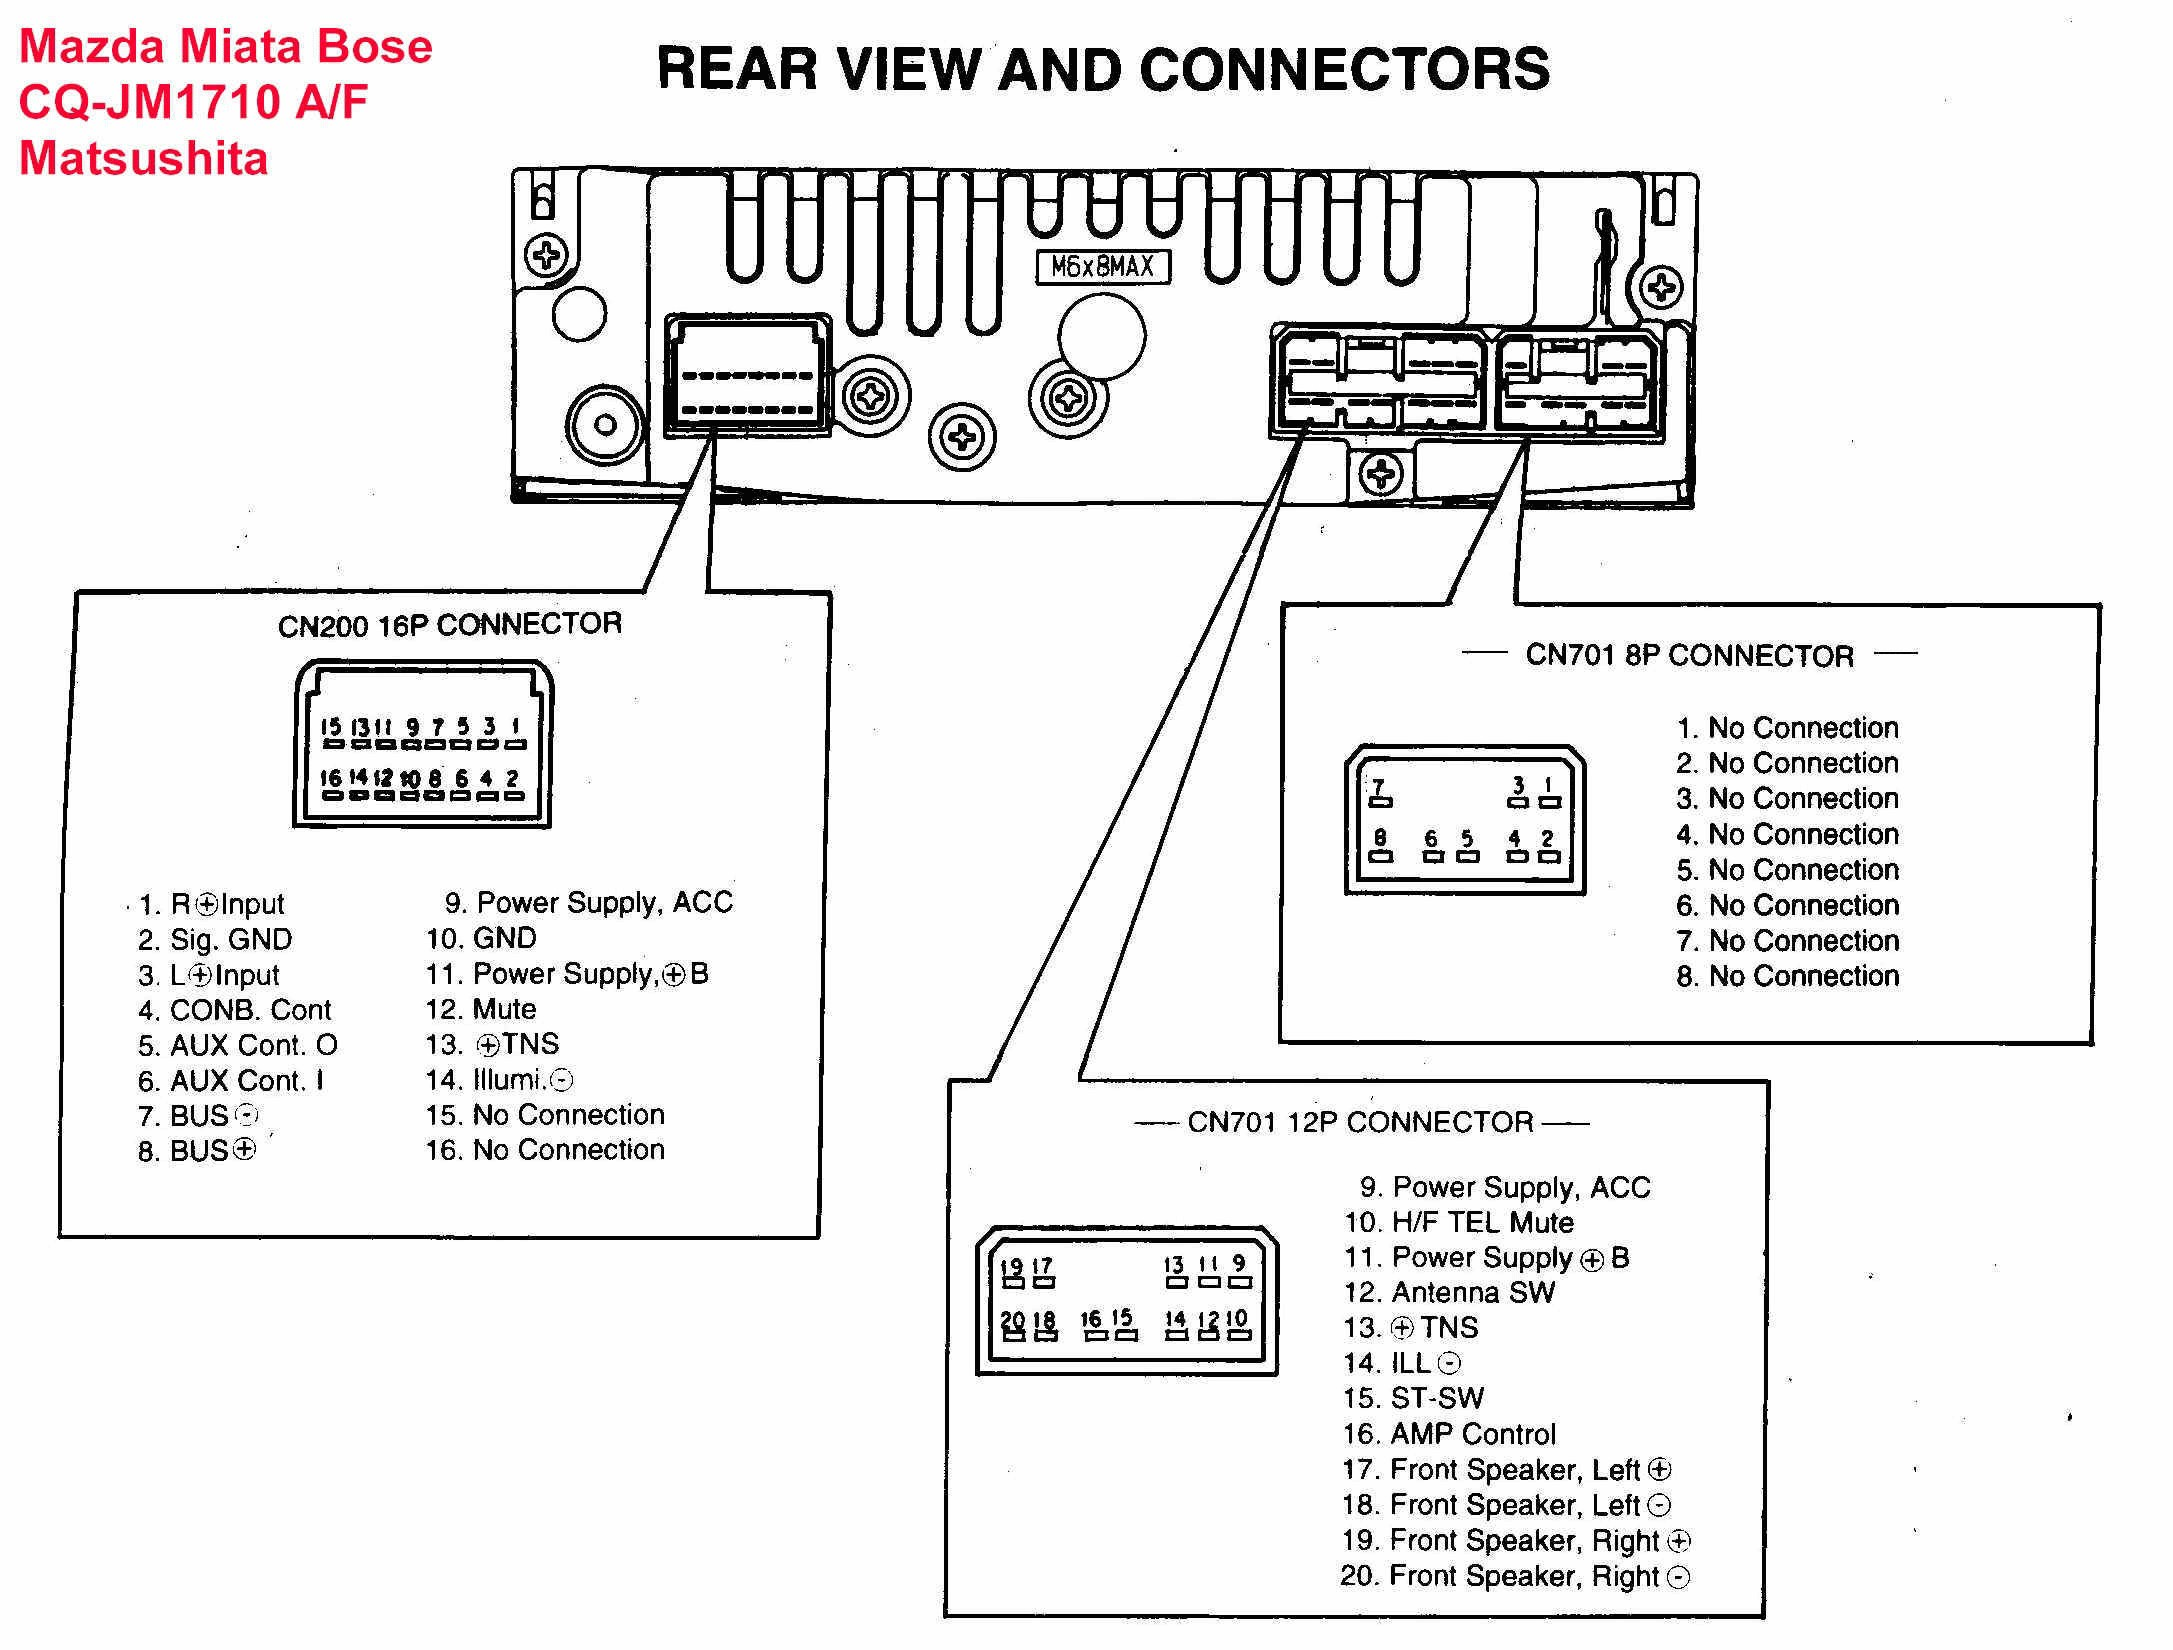 J30 Wiring Diagram And Schematics 1993 Infiniti Under Dash Fuse Box 1995 Unlimited Diagrams Library Source 2000 Nissan Maxima Antenna Trusted Rh Hamze Co